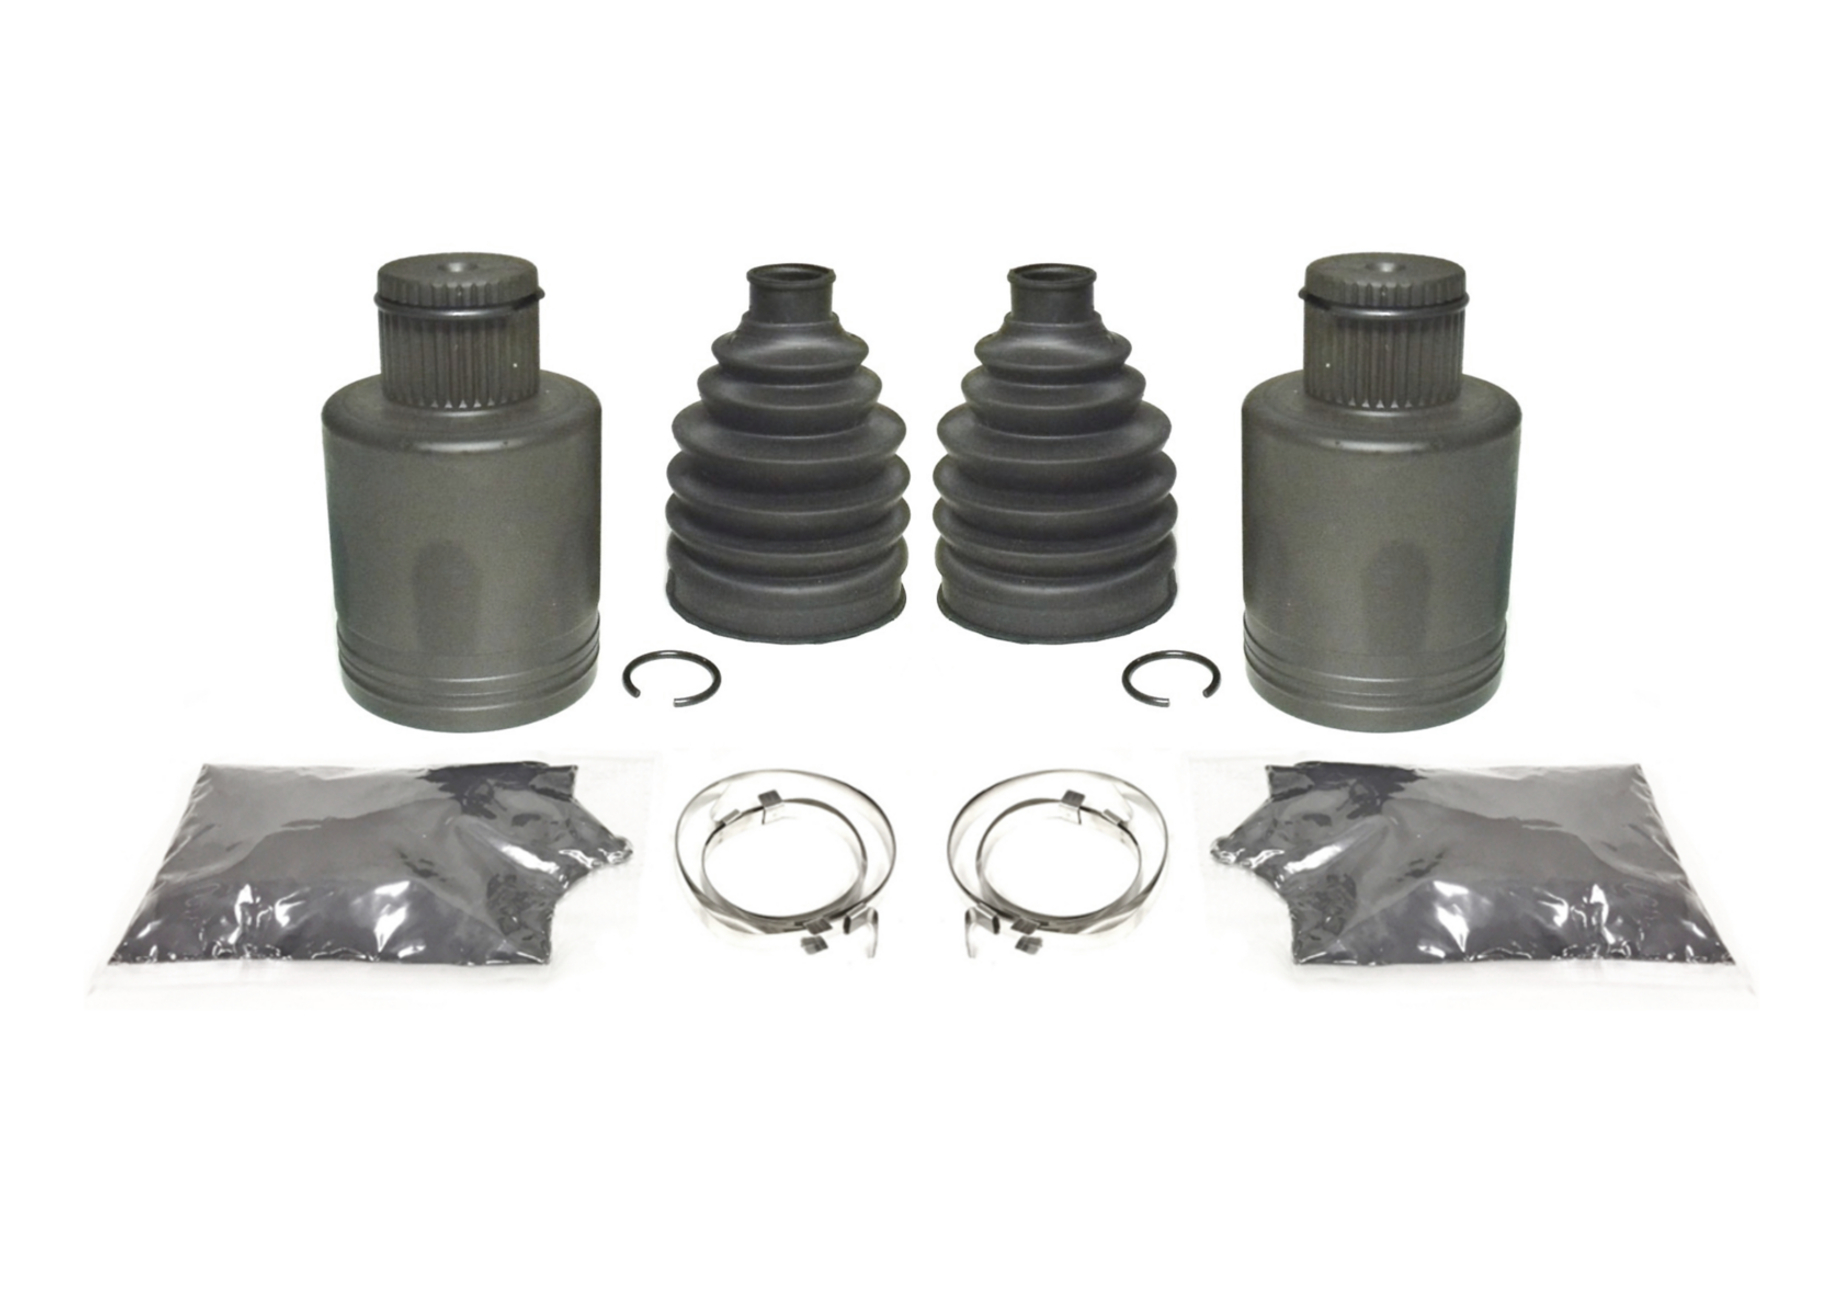 Pair of Rear Axle Inner CV Joint Kits for Polaris Sportsman 570 4x4 2014 ATV